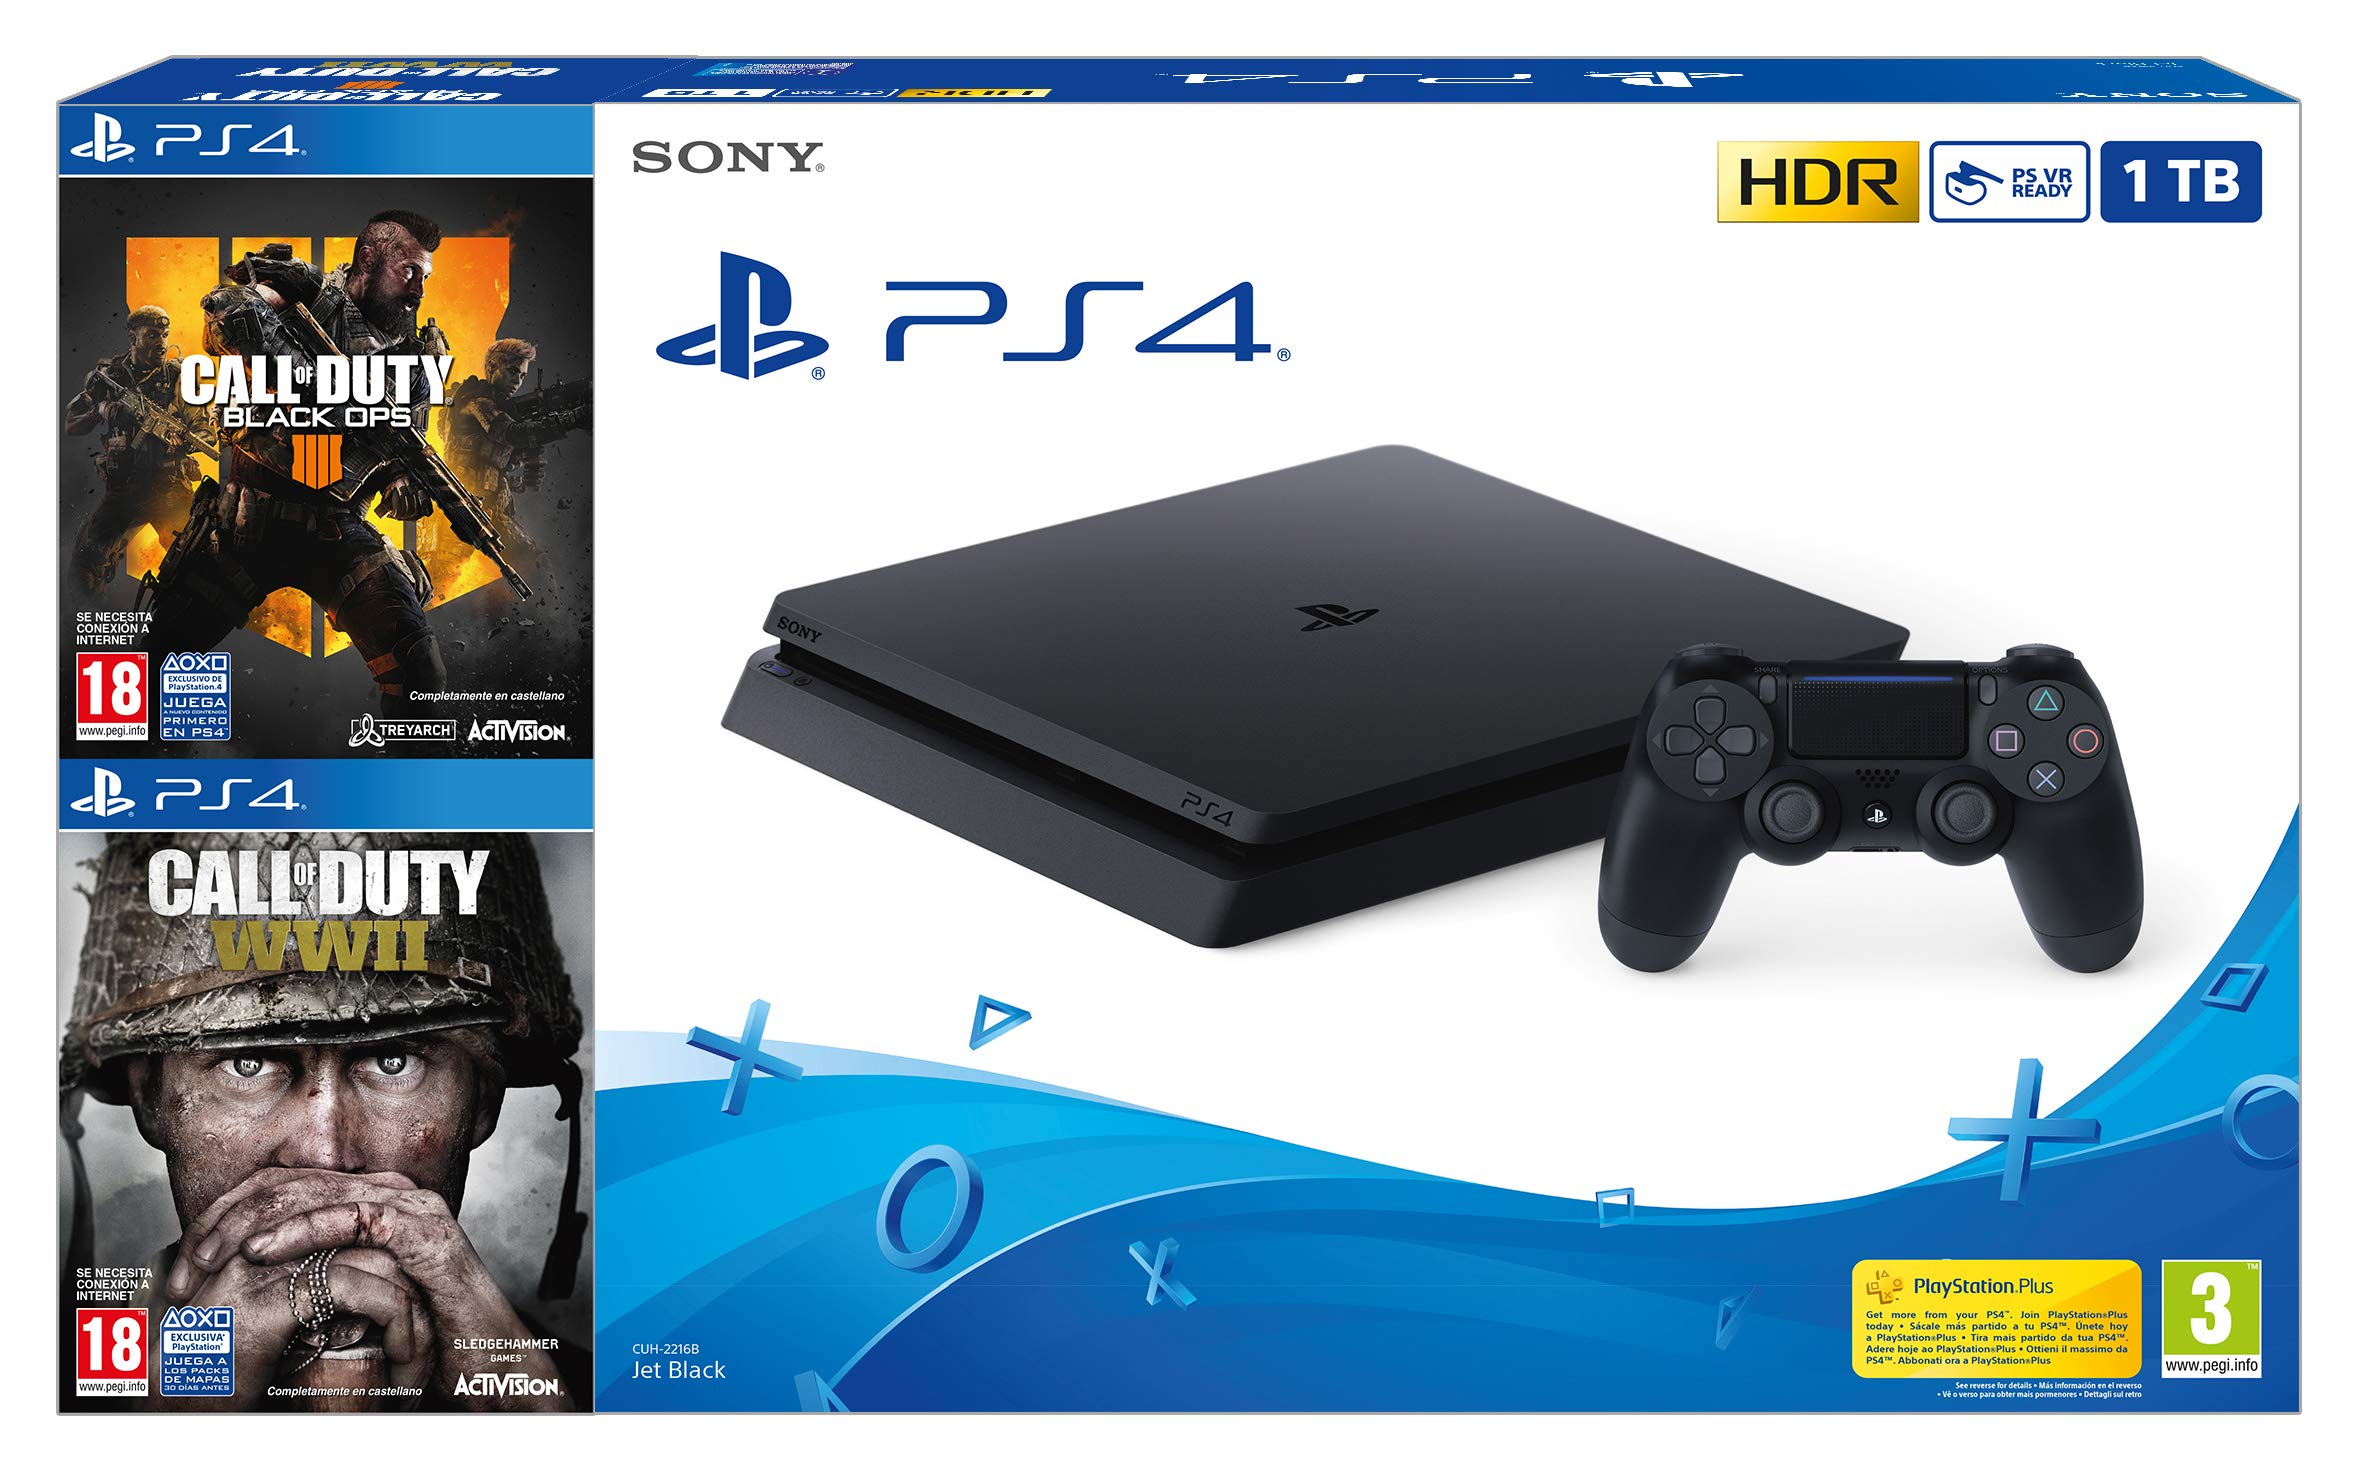 PlayStation 4 (PS4) - Consola 1 TB + COD Black Ops IIII + COD WW2: Sony: Amazon.es: Videojuegos